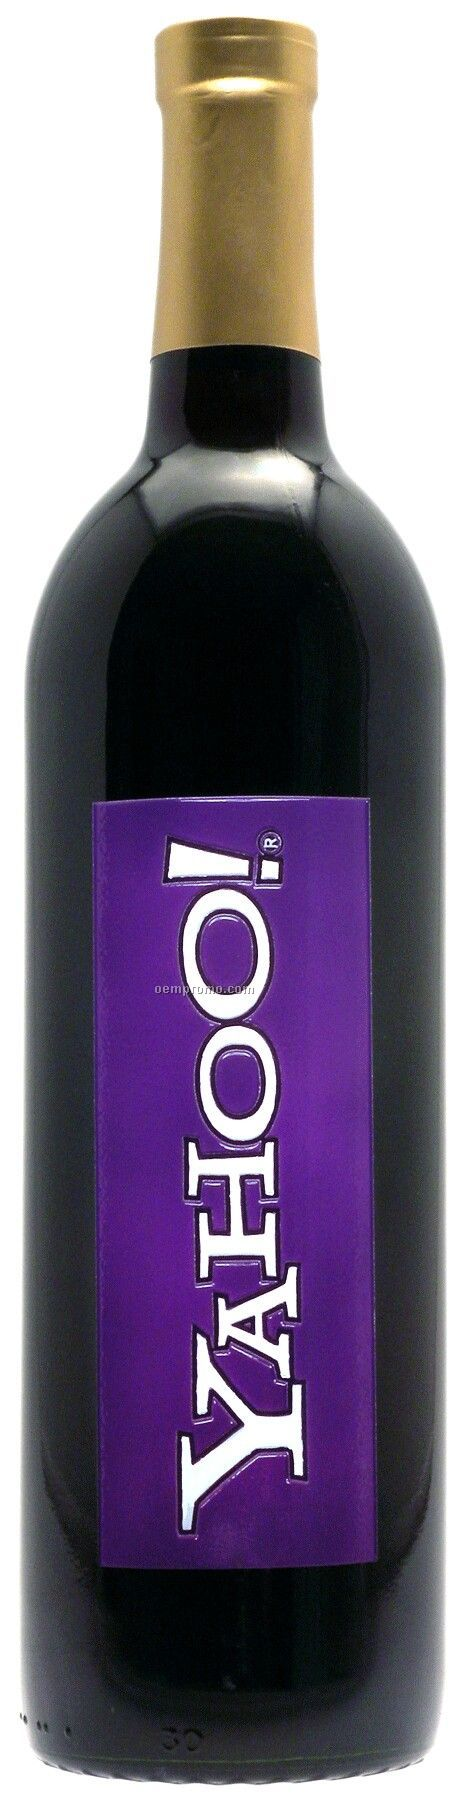 750ml Standard Cabernet Sauvignon Wine Etched With 2 Color Fills